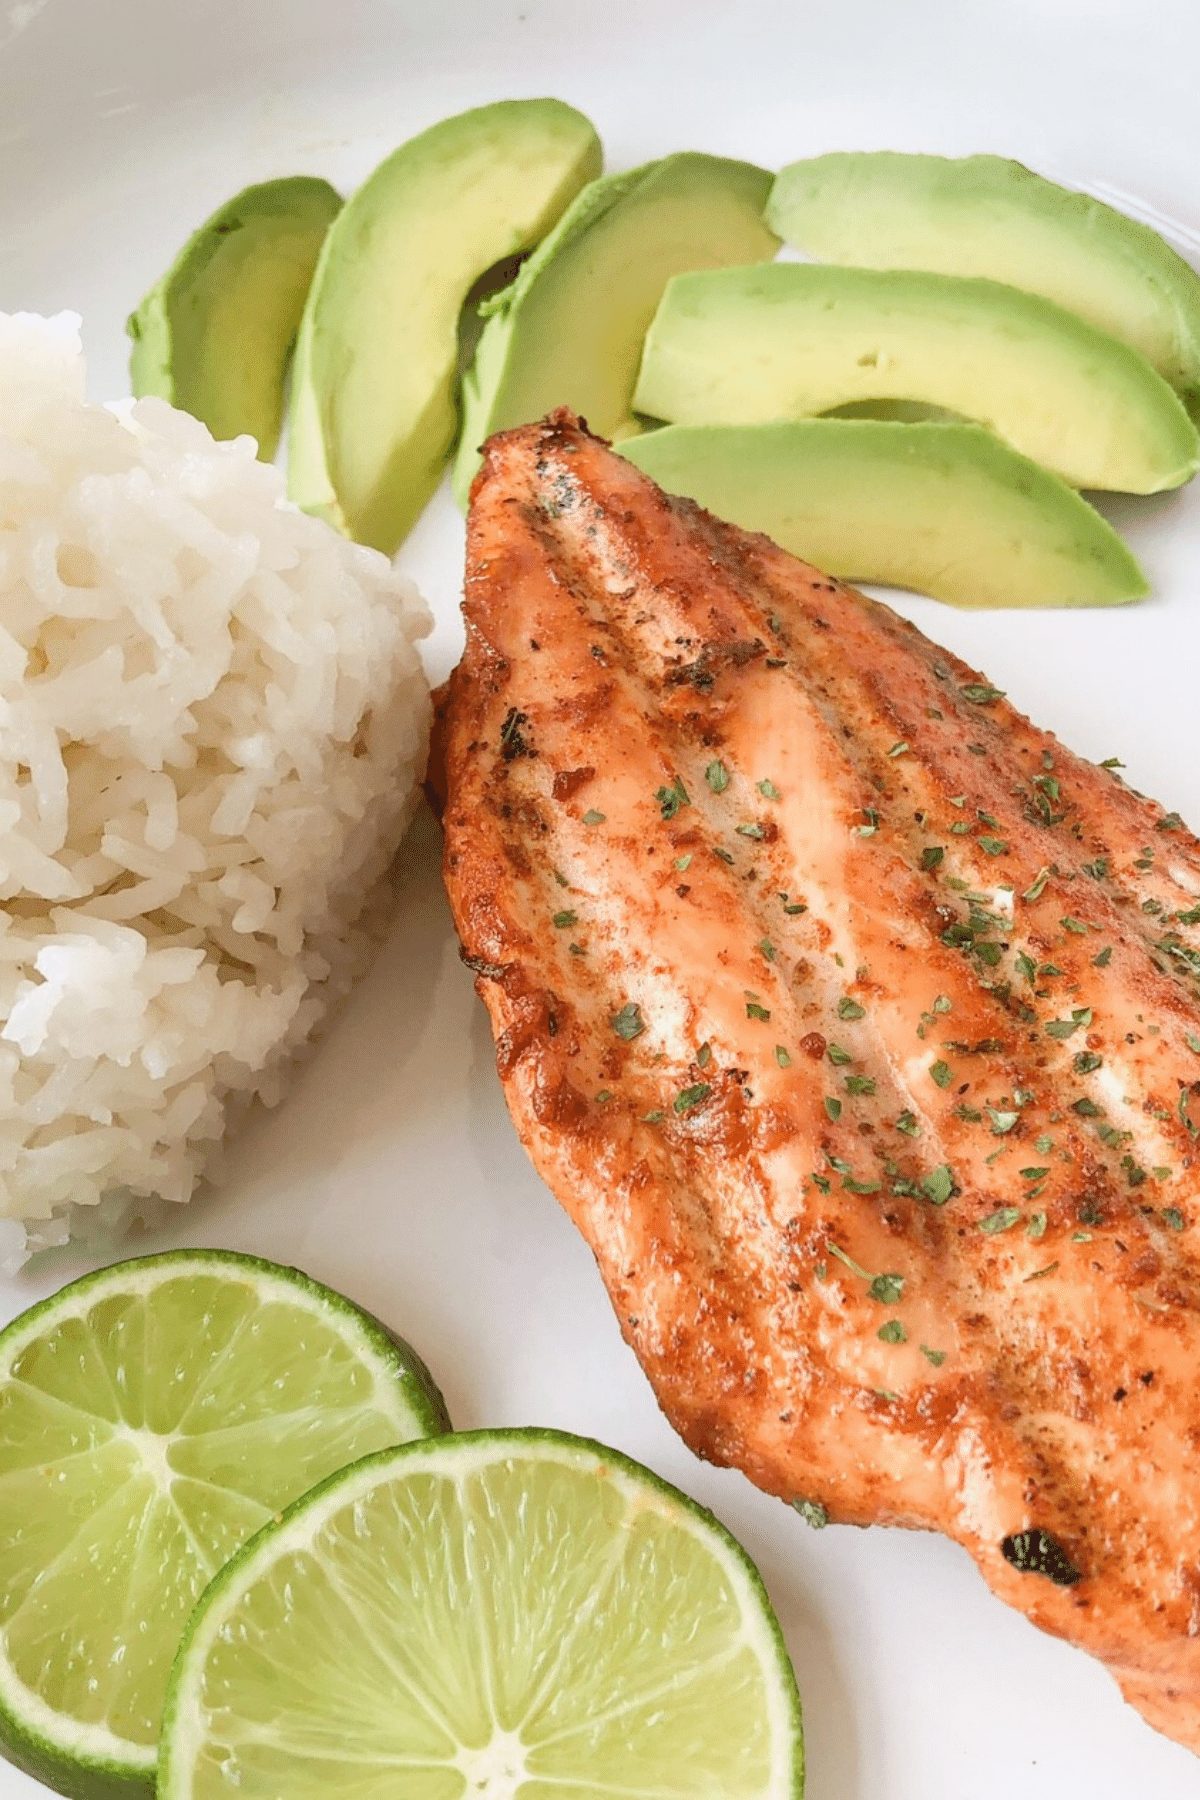 chicken breast served with white rice and avacado and lime slices